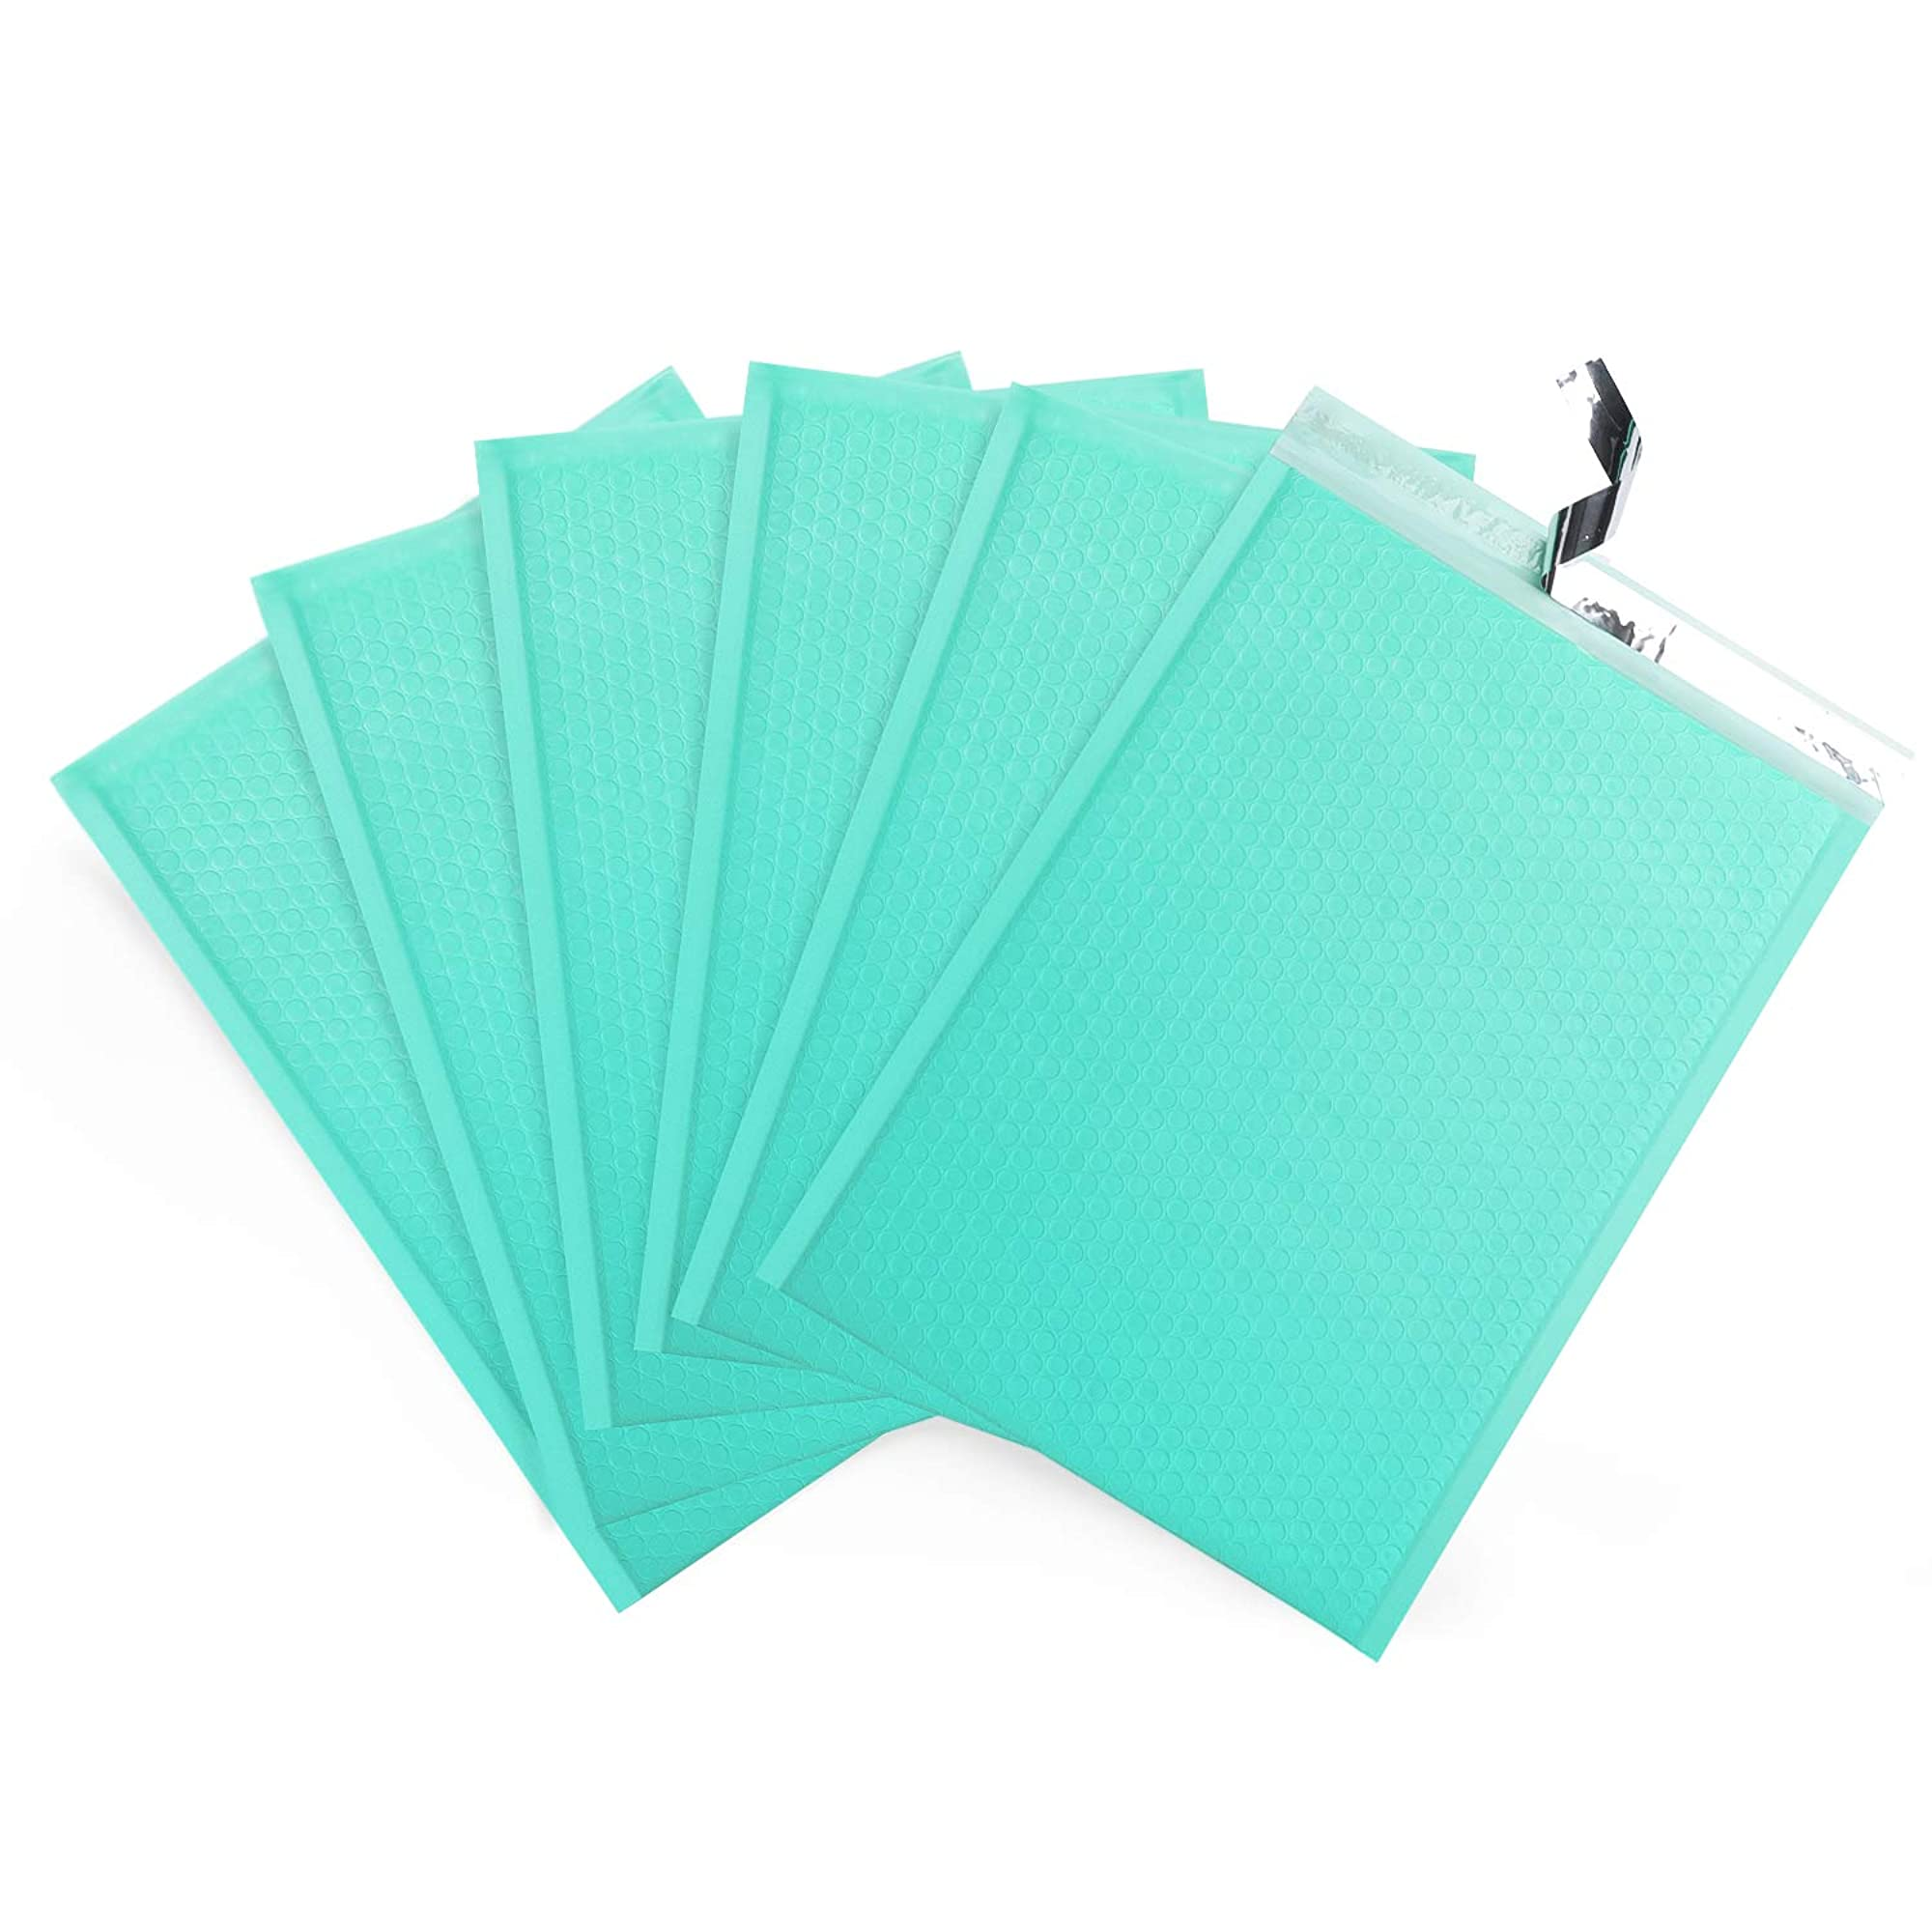 25 Pieces Of Blue Padded Envelopes